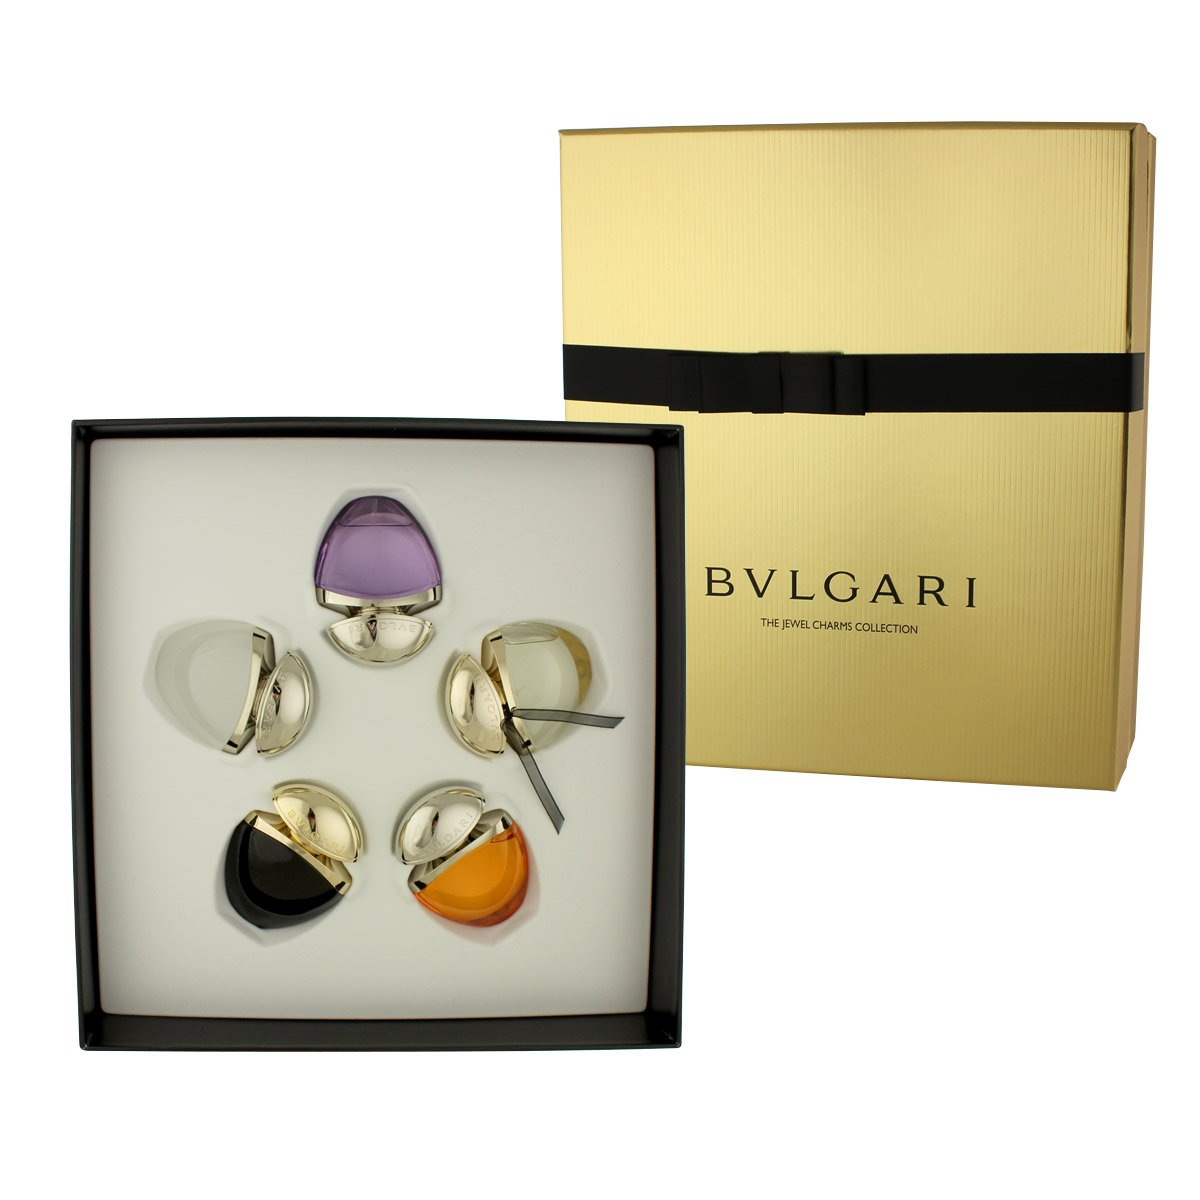 Bvlgari Jewel Charms Collection Extraordinary Perfume Gift Set - Pack of 5 0783320805158